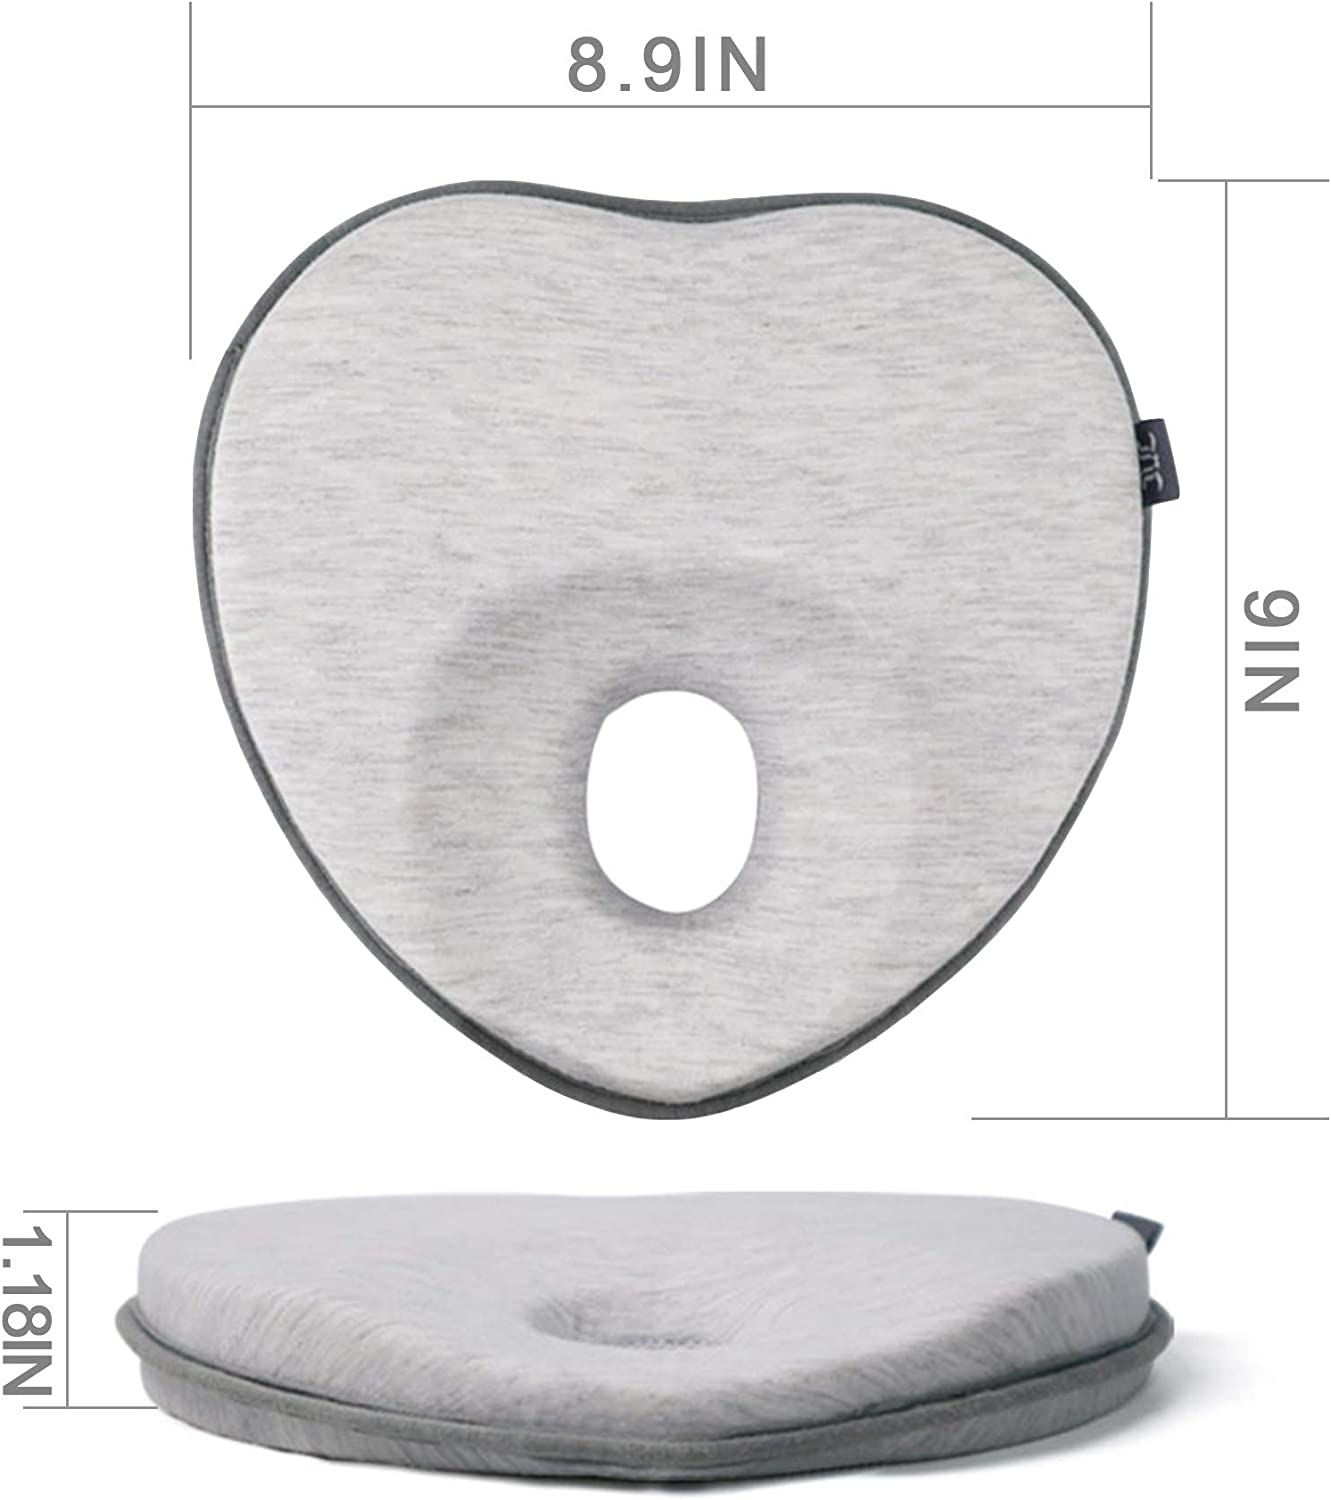 Heart Shaped./ LONOY Newborn Baby Head Shaping Pillow|Baby Pillow for Flat Head Syndrome Prevention|Premium Memory Foam Infant Pillow for Head/&Neck Support Pillow